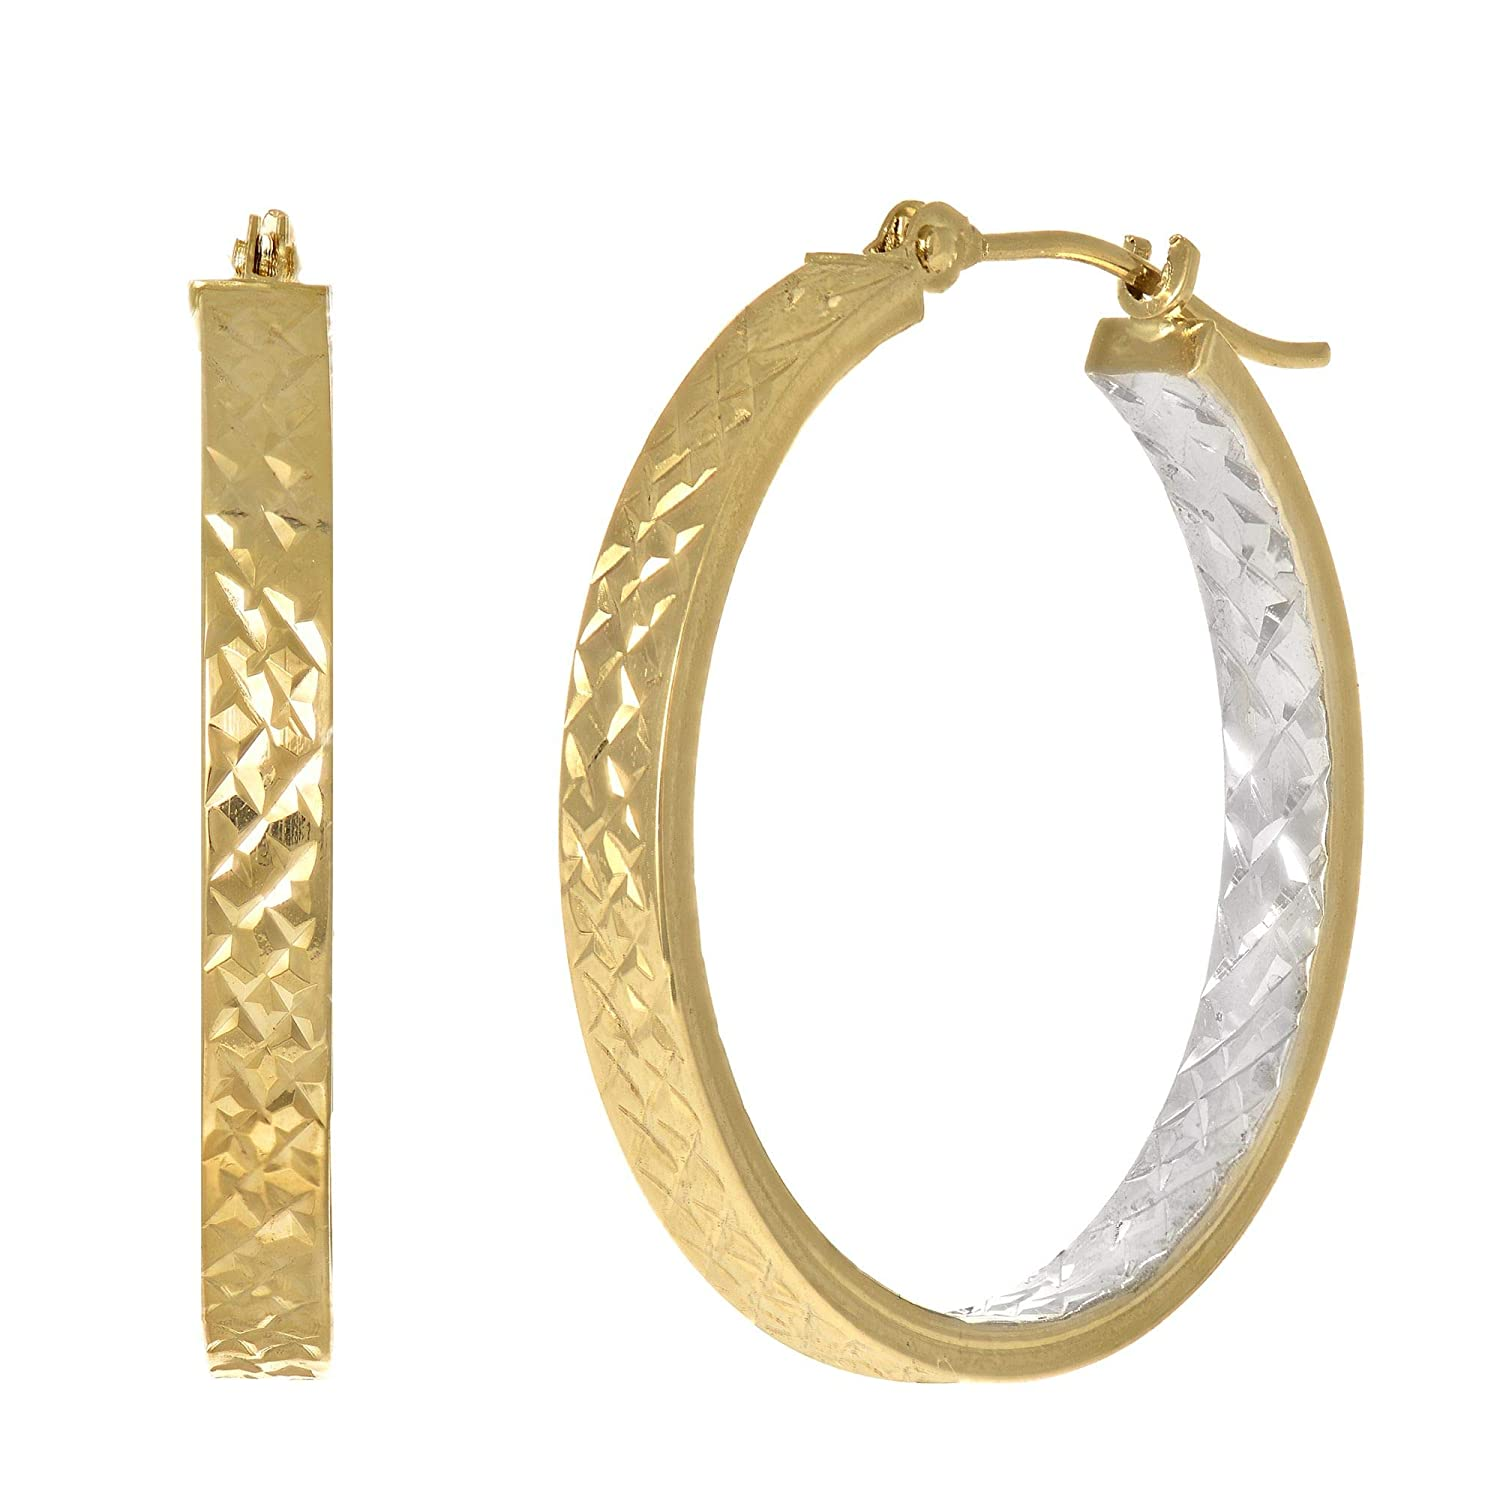 14K or 10K Yellow /& White Gold 3x25mm Diamond Cut Hoop Earrings with Hinged by Icedtime